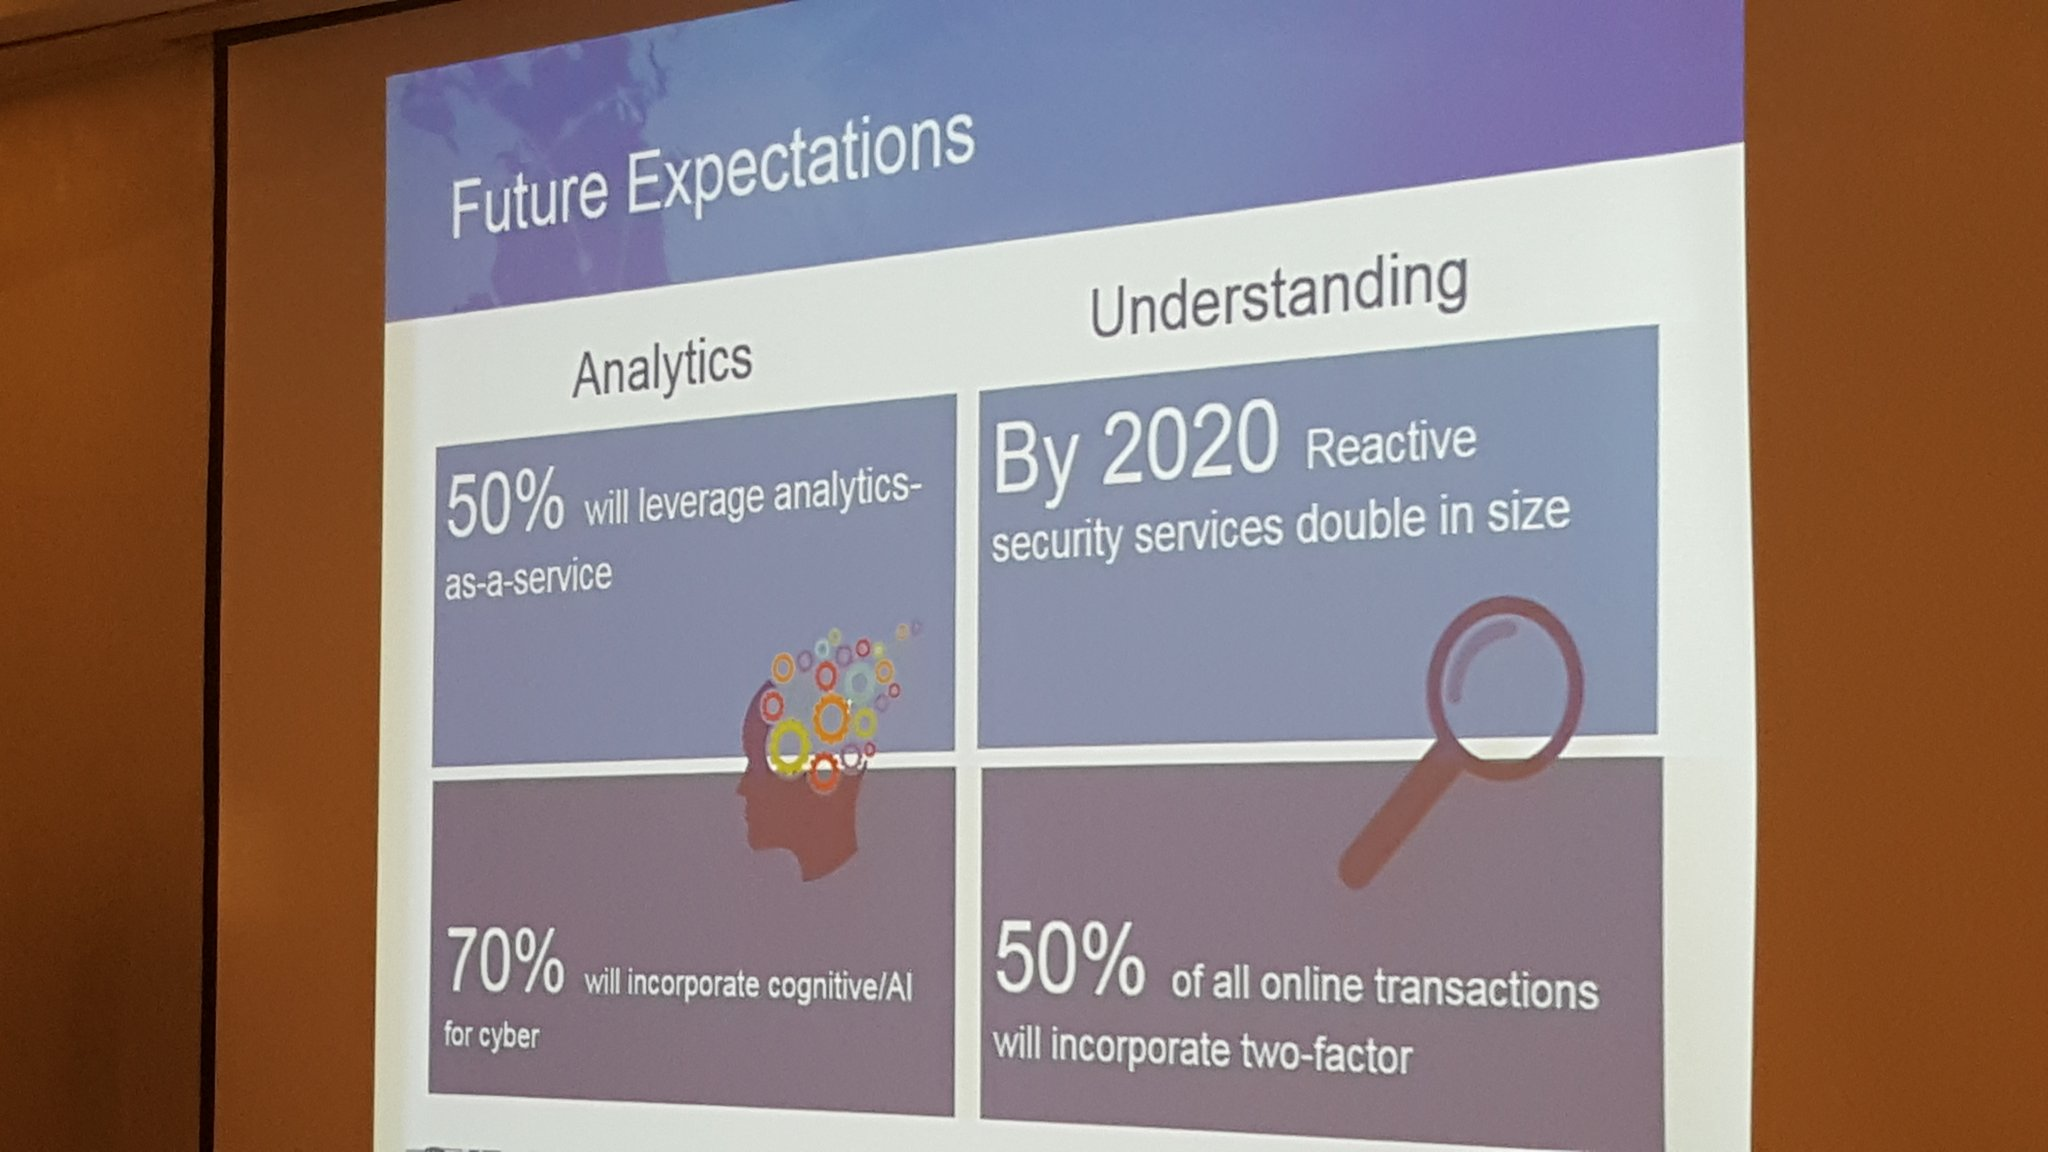 Some future security predictions by @idc Sean Pike https://t.co/Bq56oAz750